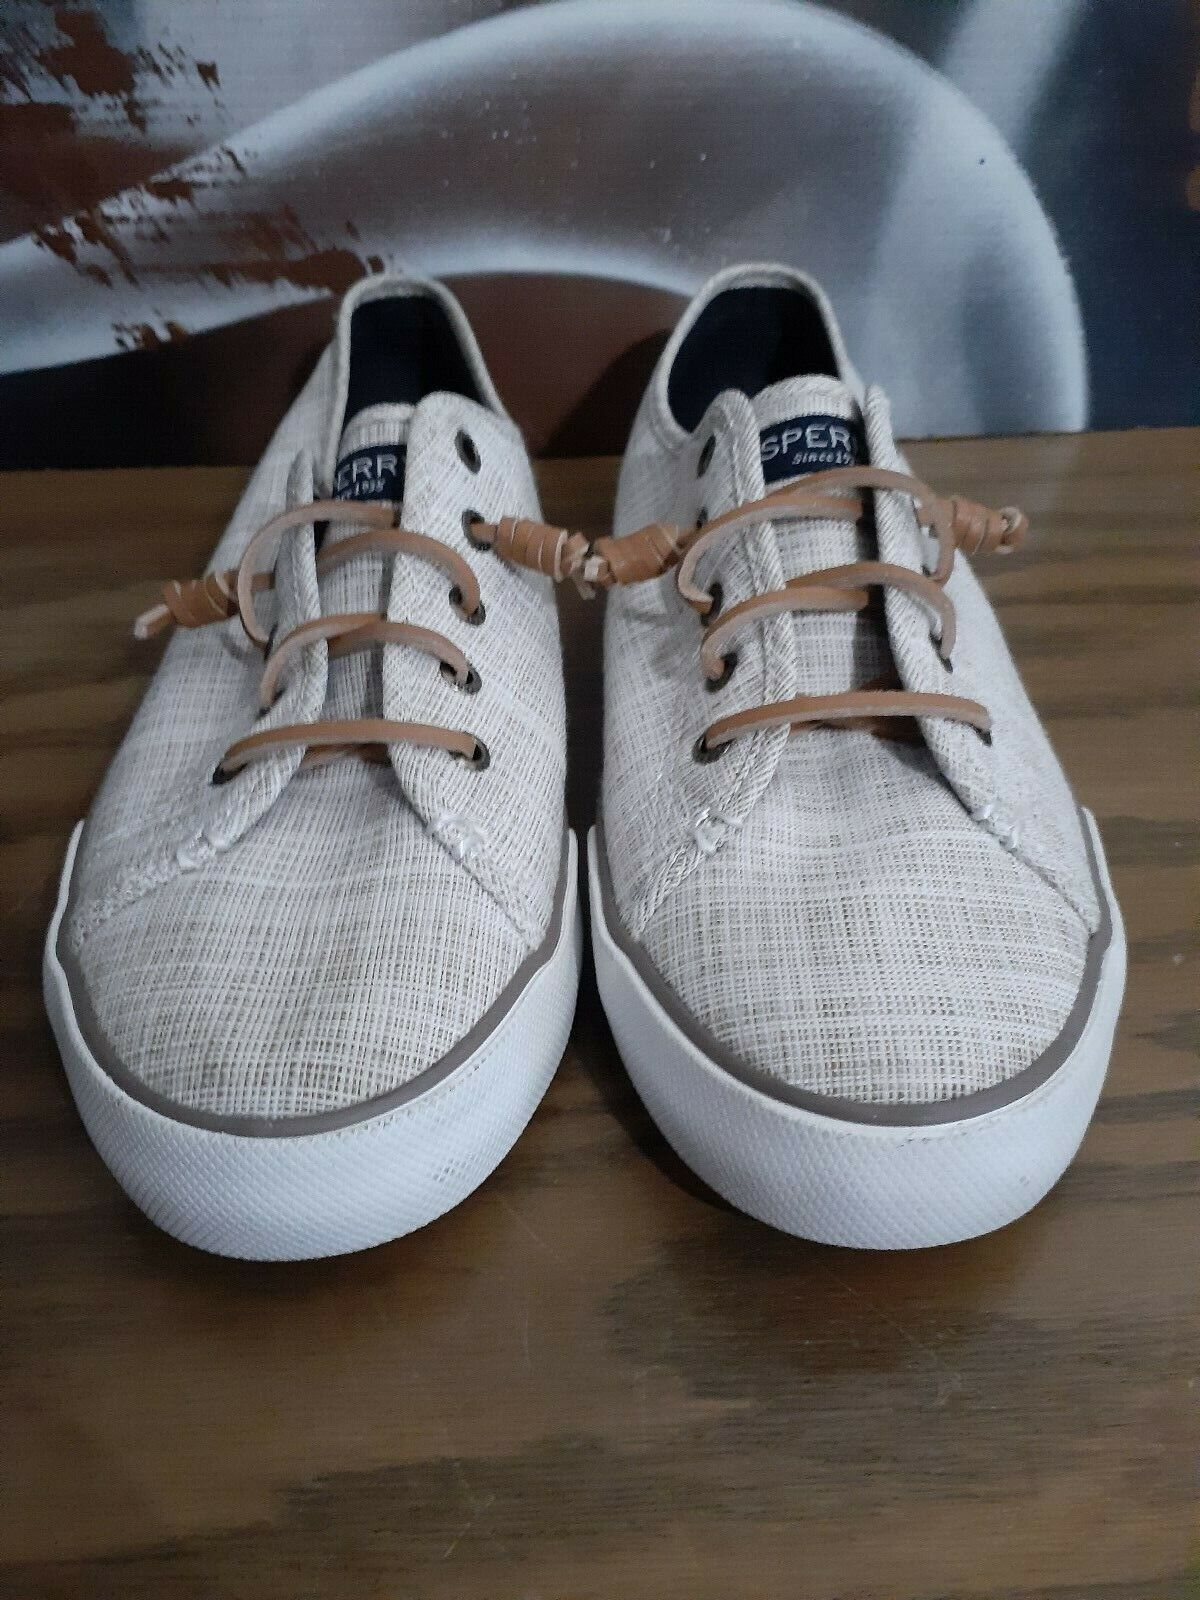 Sperry STS98863 women's tan fabric lace up oxfords shoes size10 M